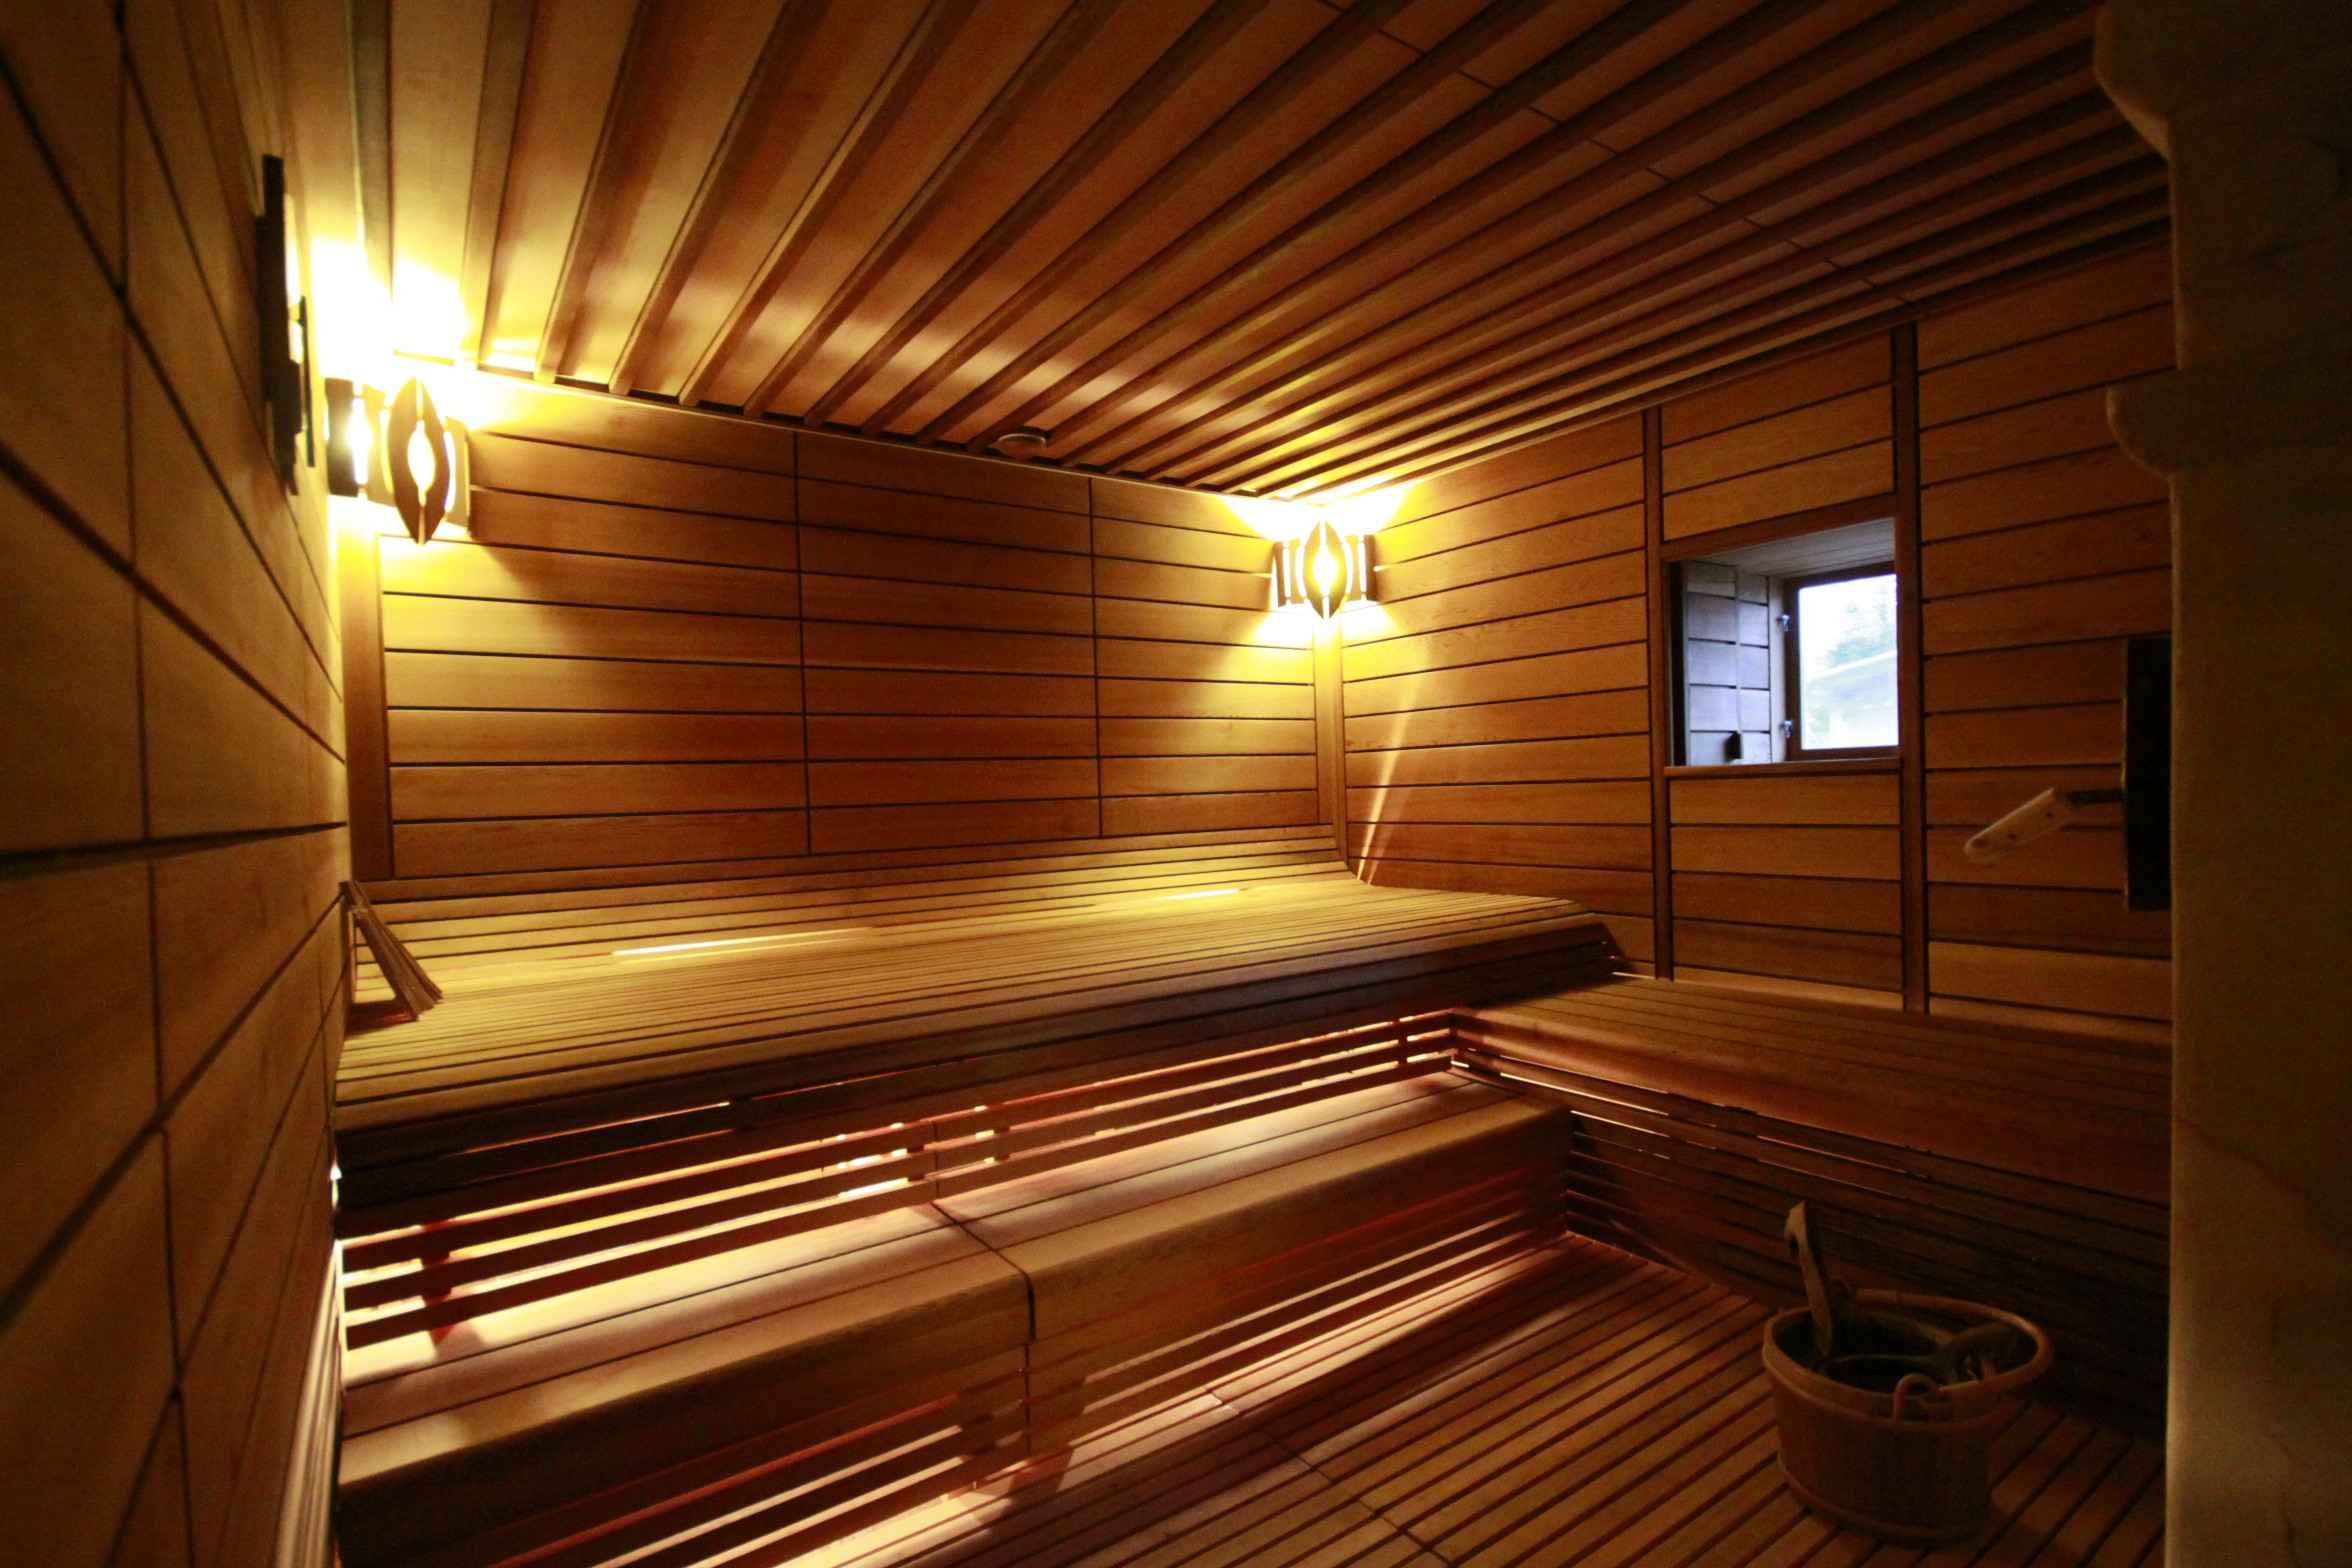 Sauna With Steam Mato Sauna